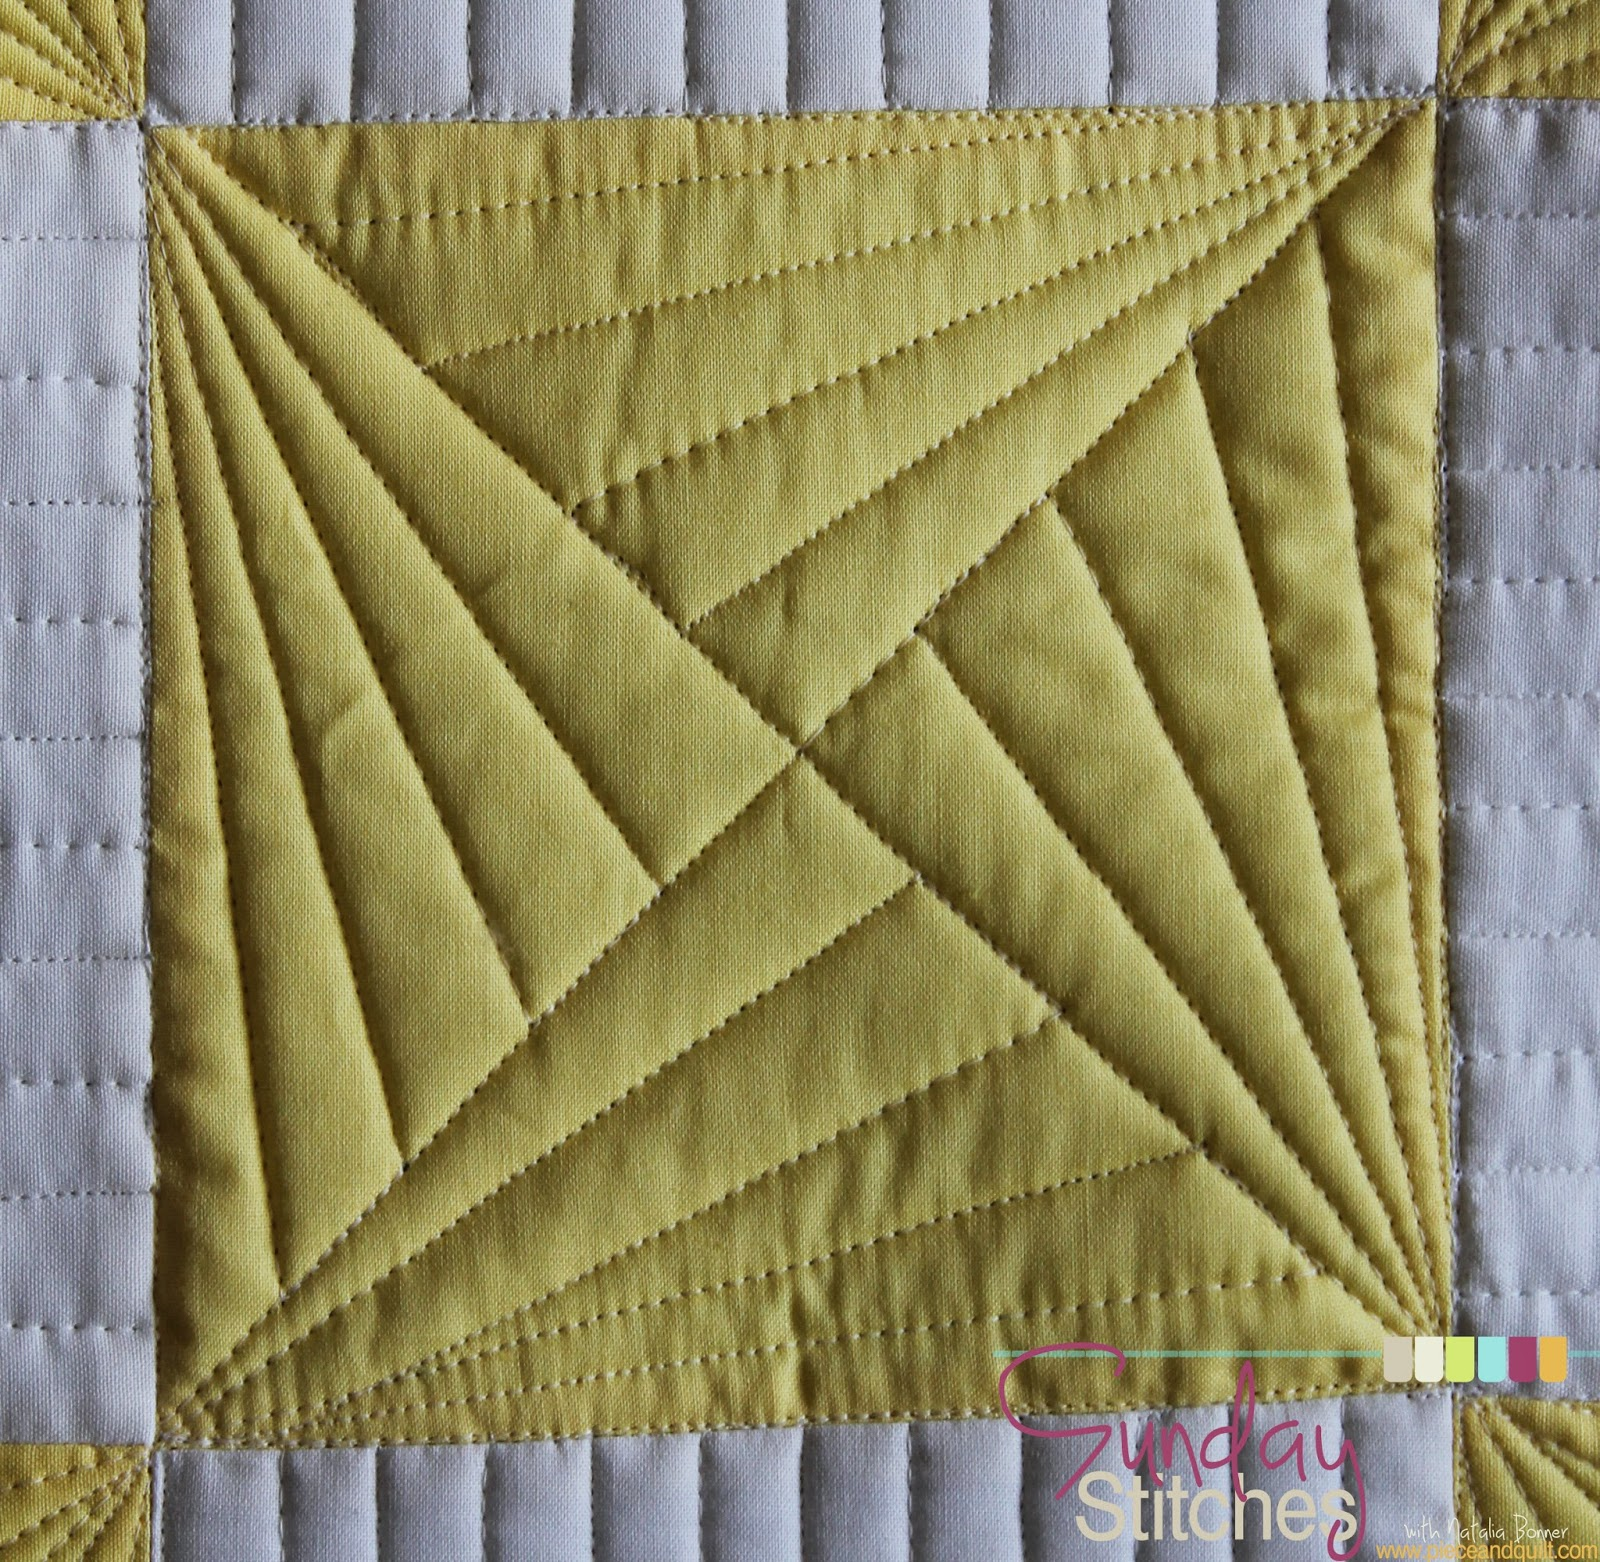 Free Motion Quilting Patterns For Blocks : Piece N Quilt: How to: Free Motion Quilt SpinningxBlock - Sunday Stitches